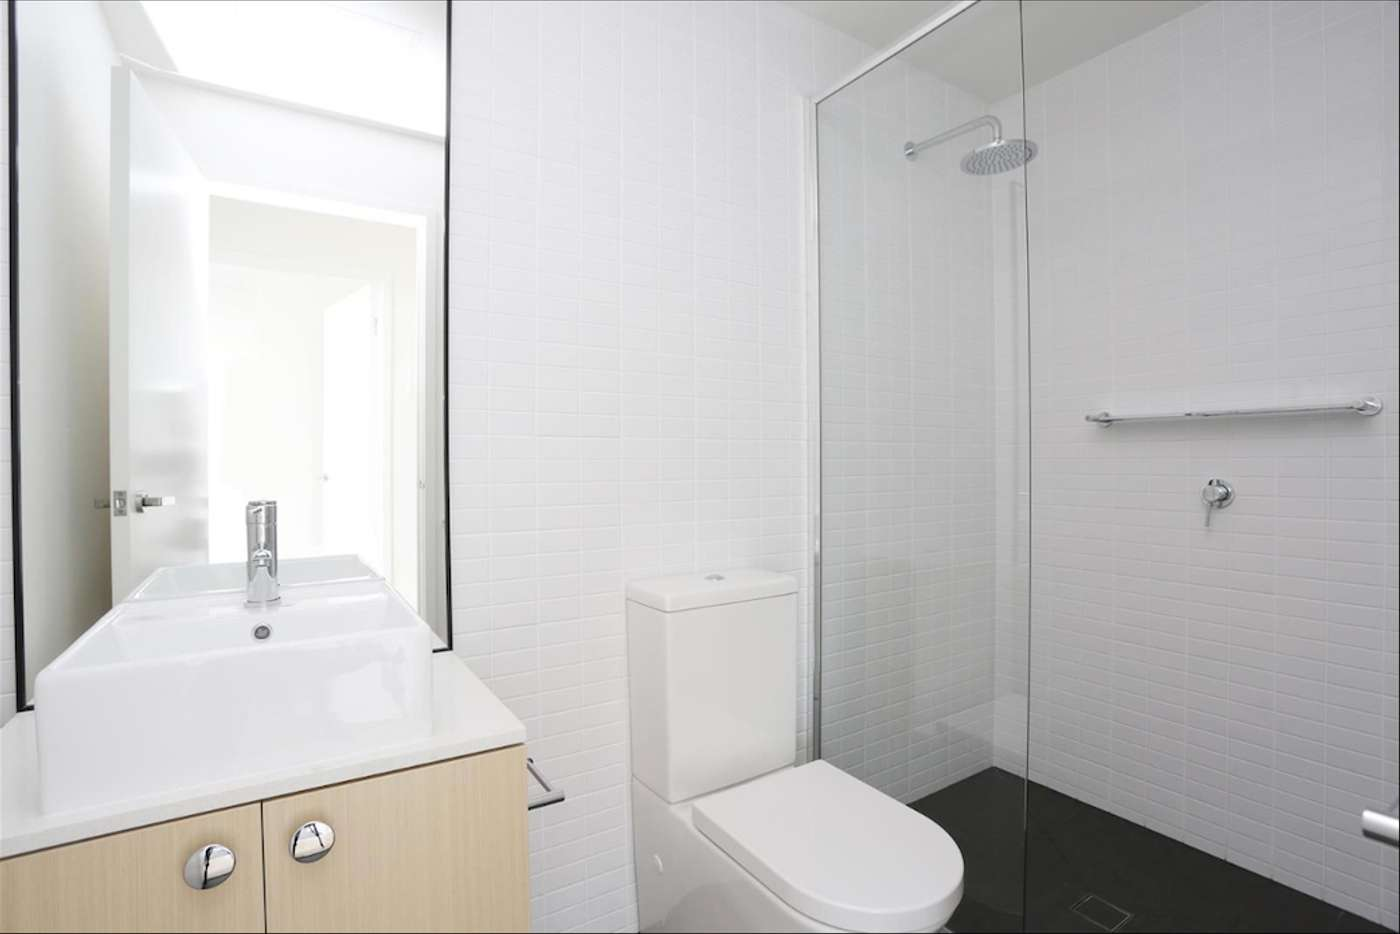 Sixth view of Homely apartment listing, 111/22-26 Lygon Street, Brunswick East VIC 3057